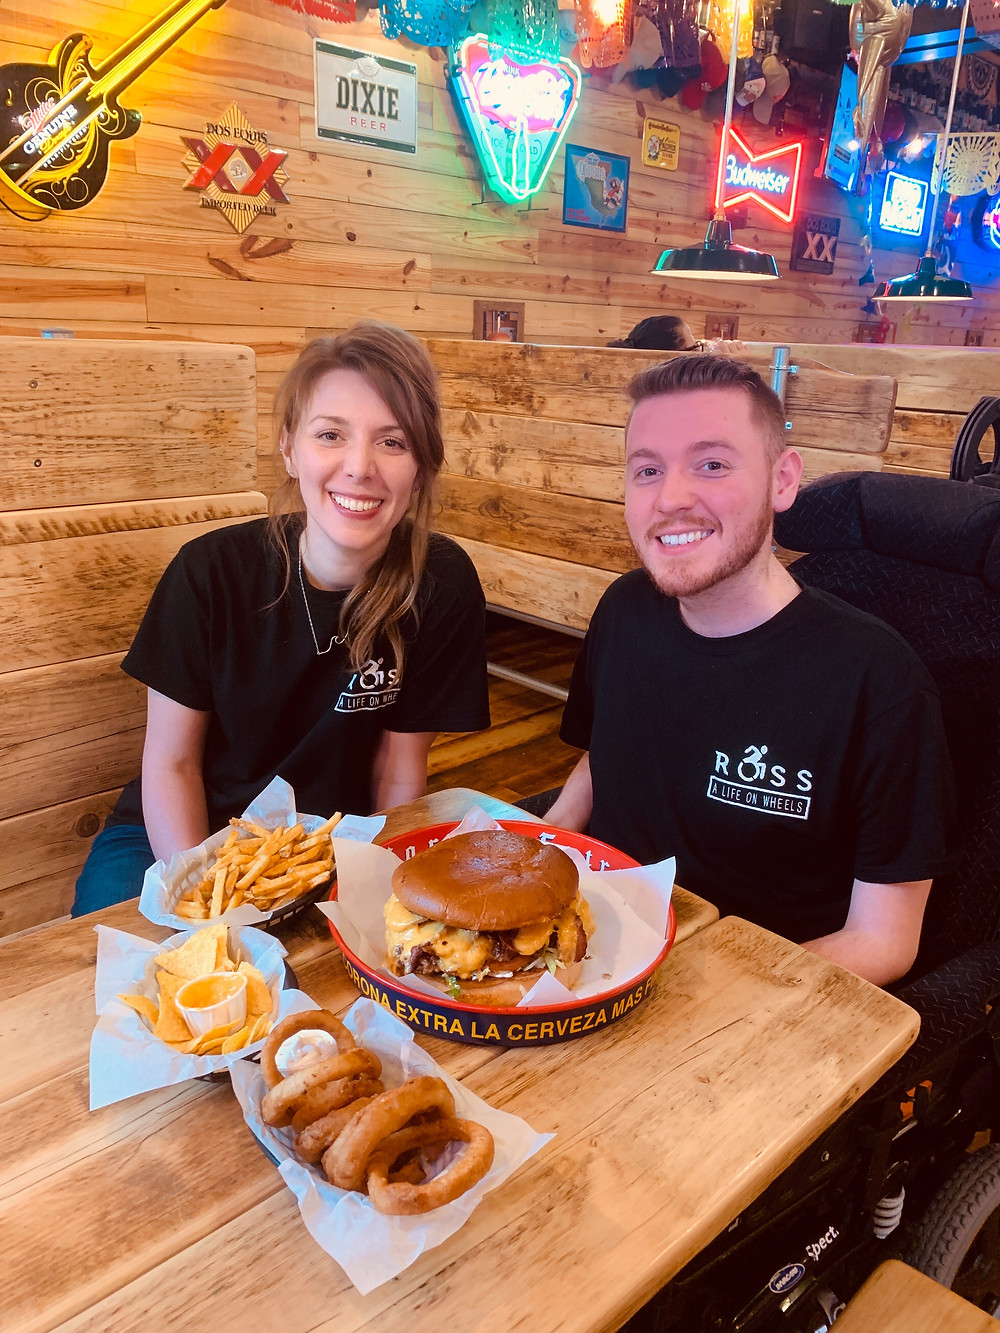 Ross and his sister smiling, surrounded by a table of food